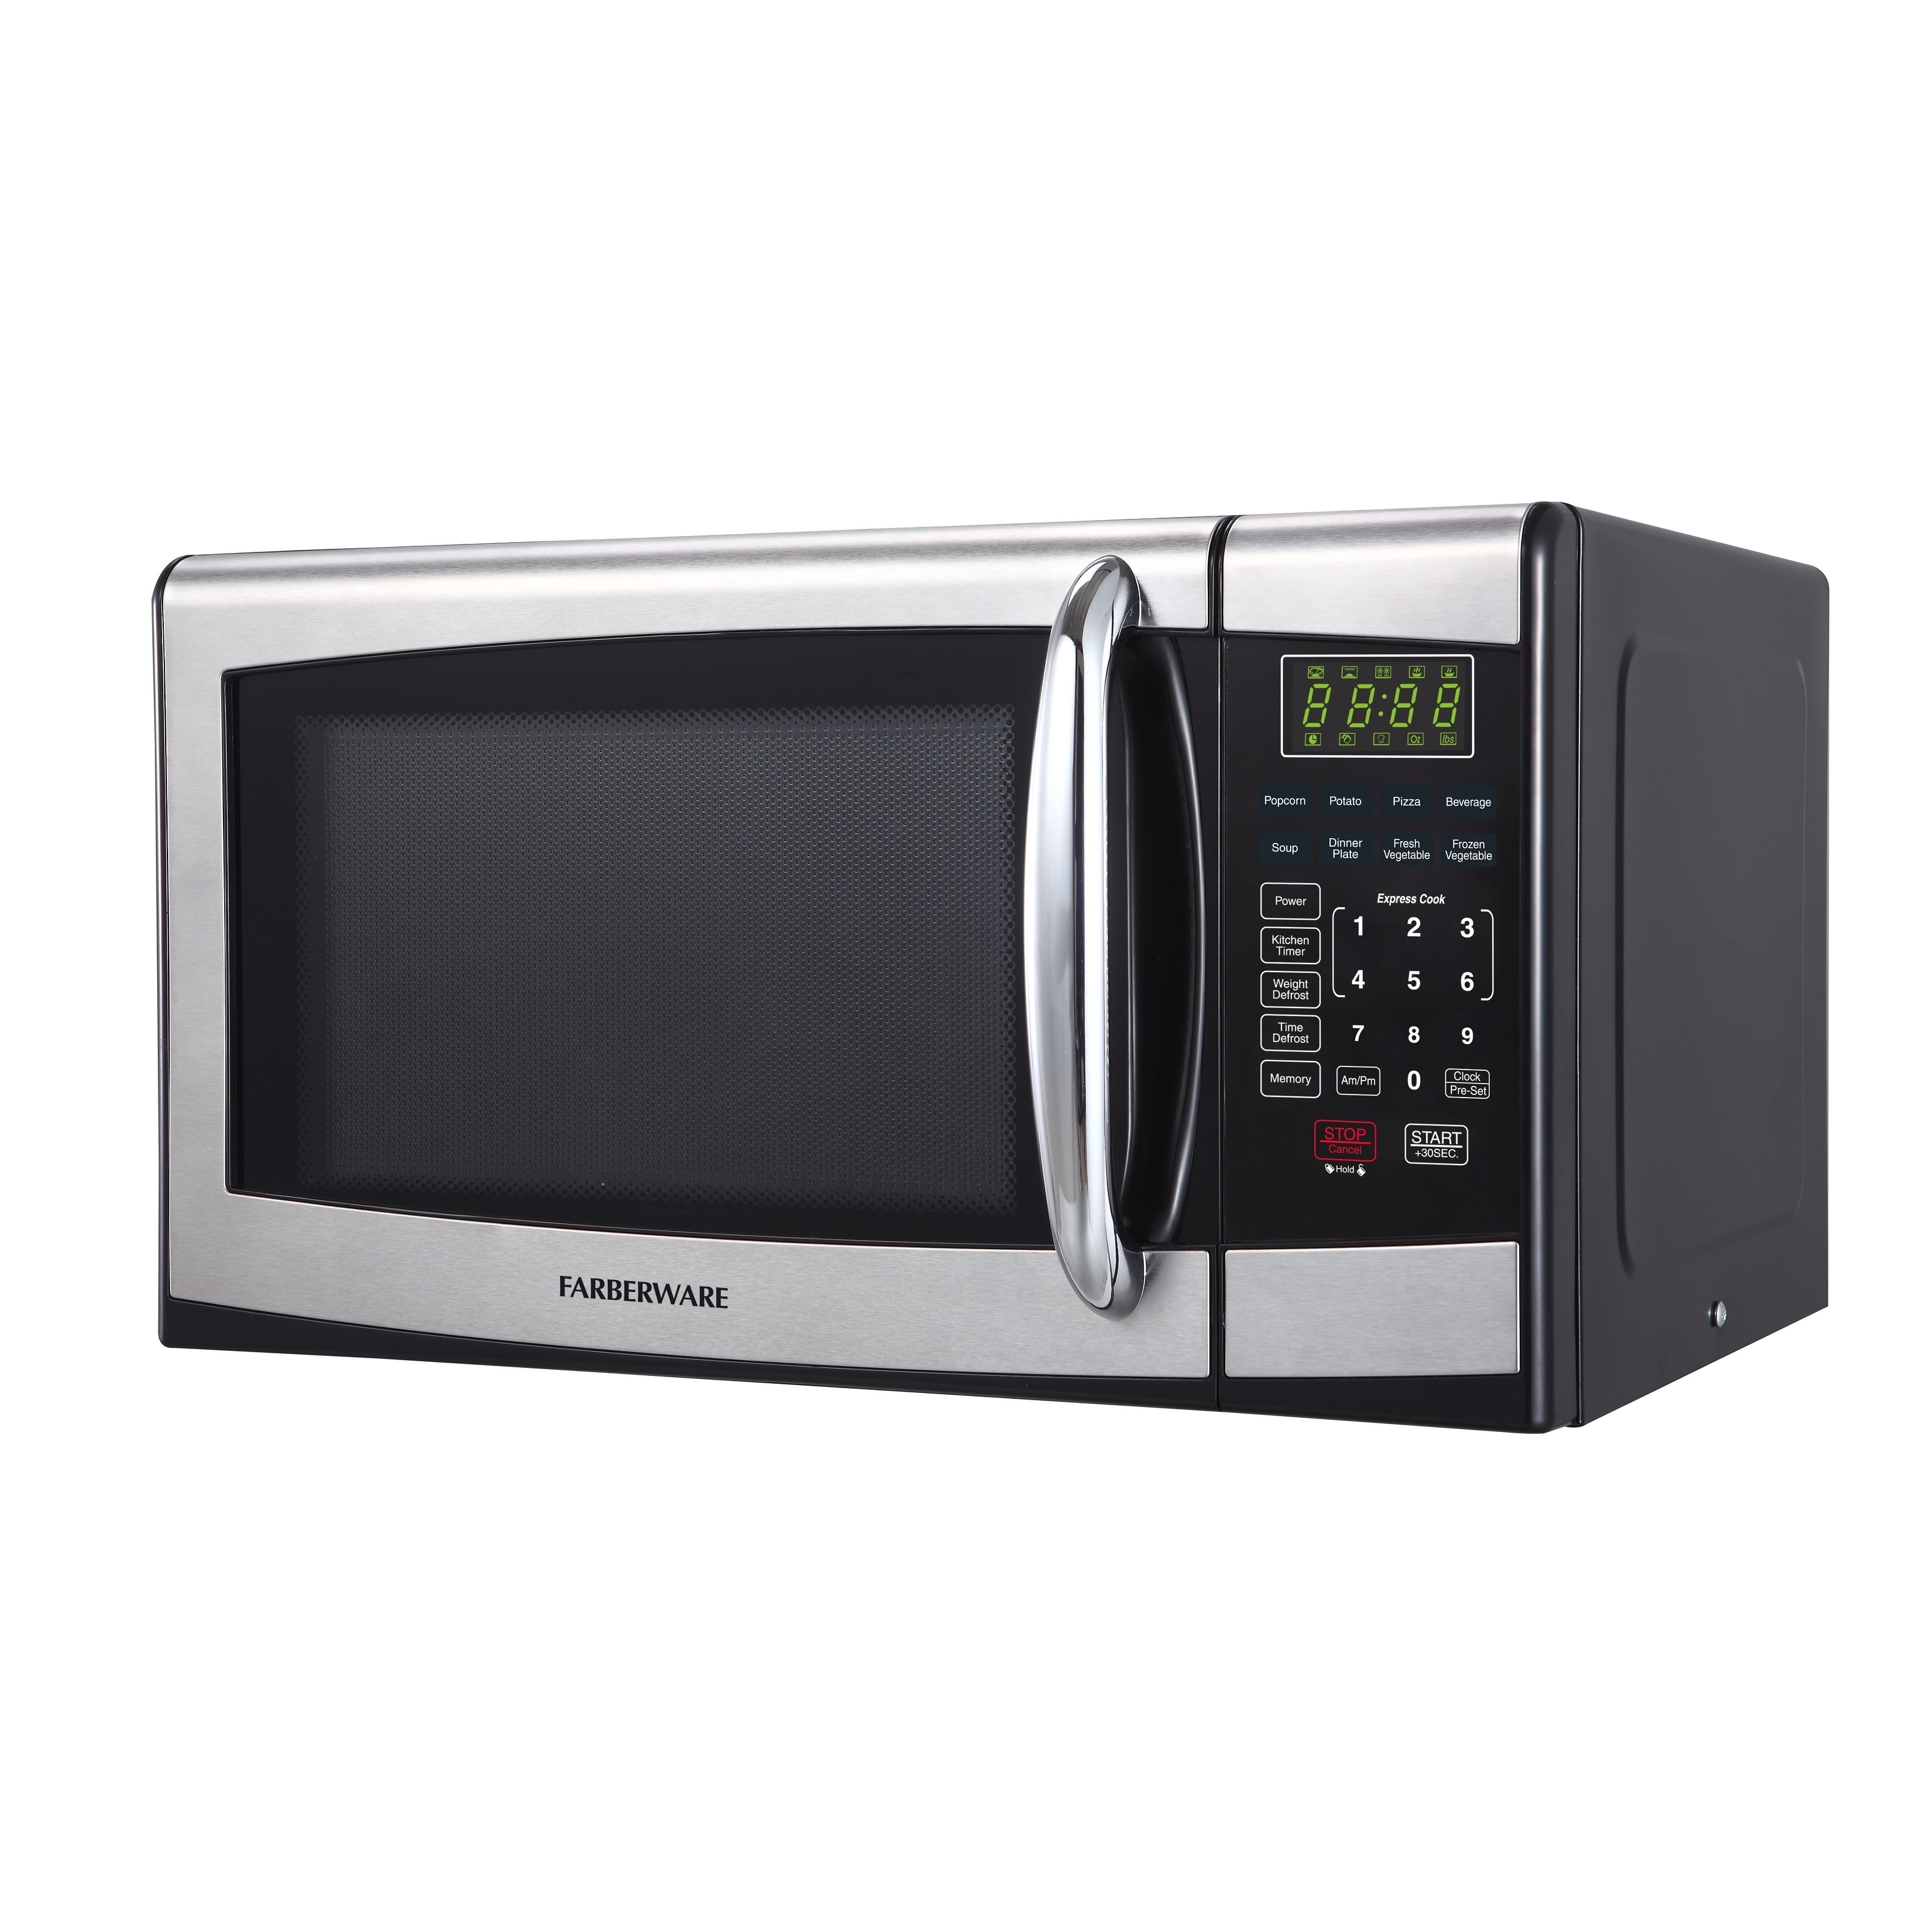 Farberware 0 9 Cubic Foot 900 Watt Microwave Oven Stainless Steel Black Free Shipping Today 23827694